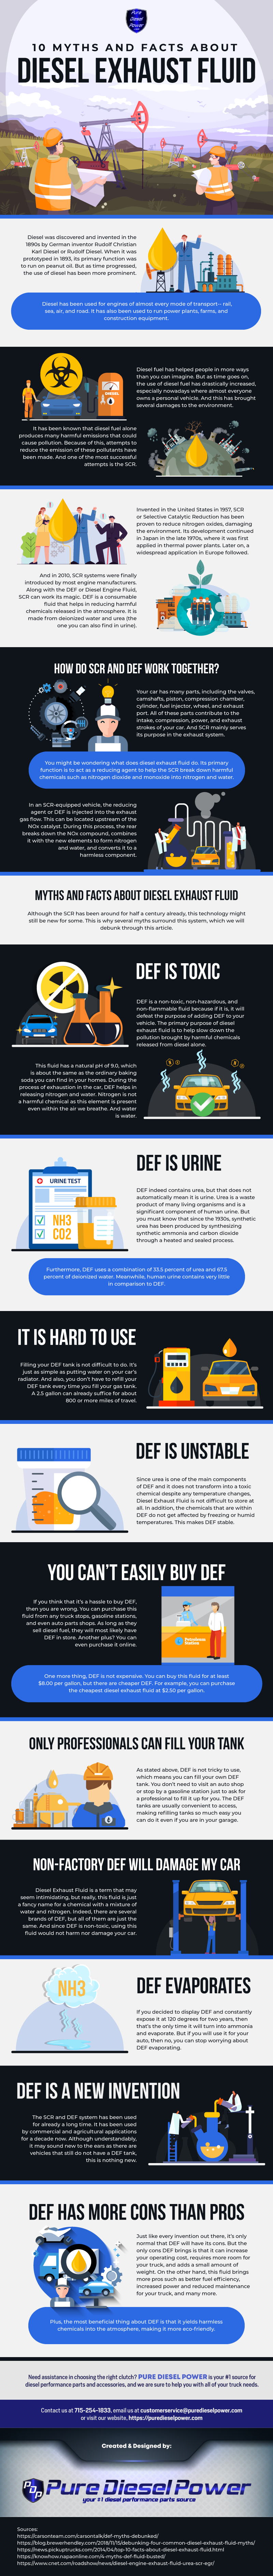 10-Myths-and-facts-about-Diesel-Exhaust-Fluid-Infographic